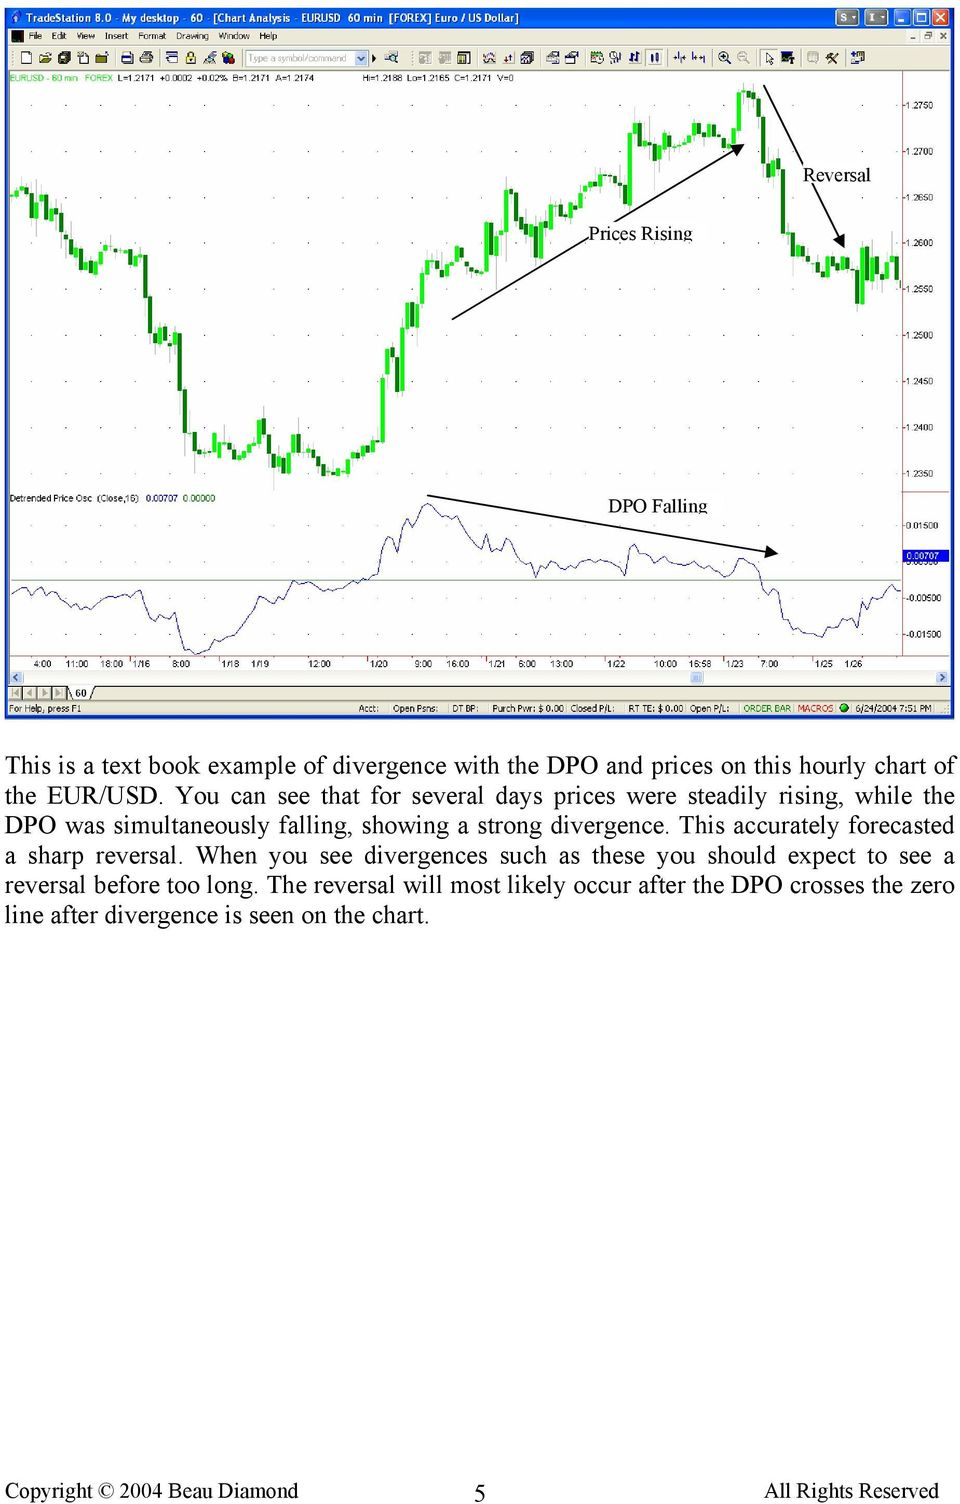 You can see that for several days prices were steadily rising, while the DPO was simultaneously falling, showing a strong